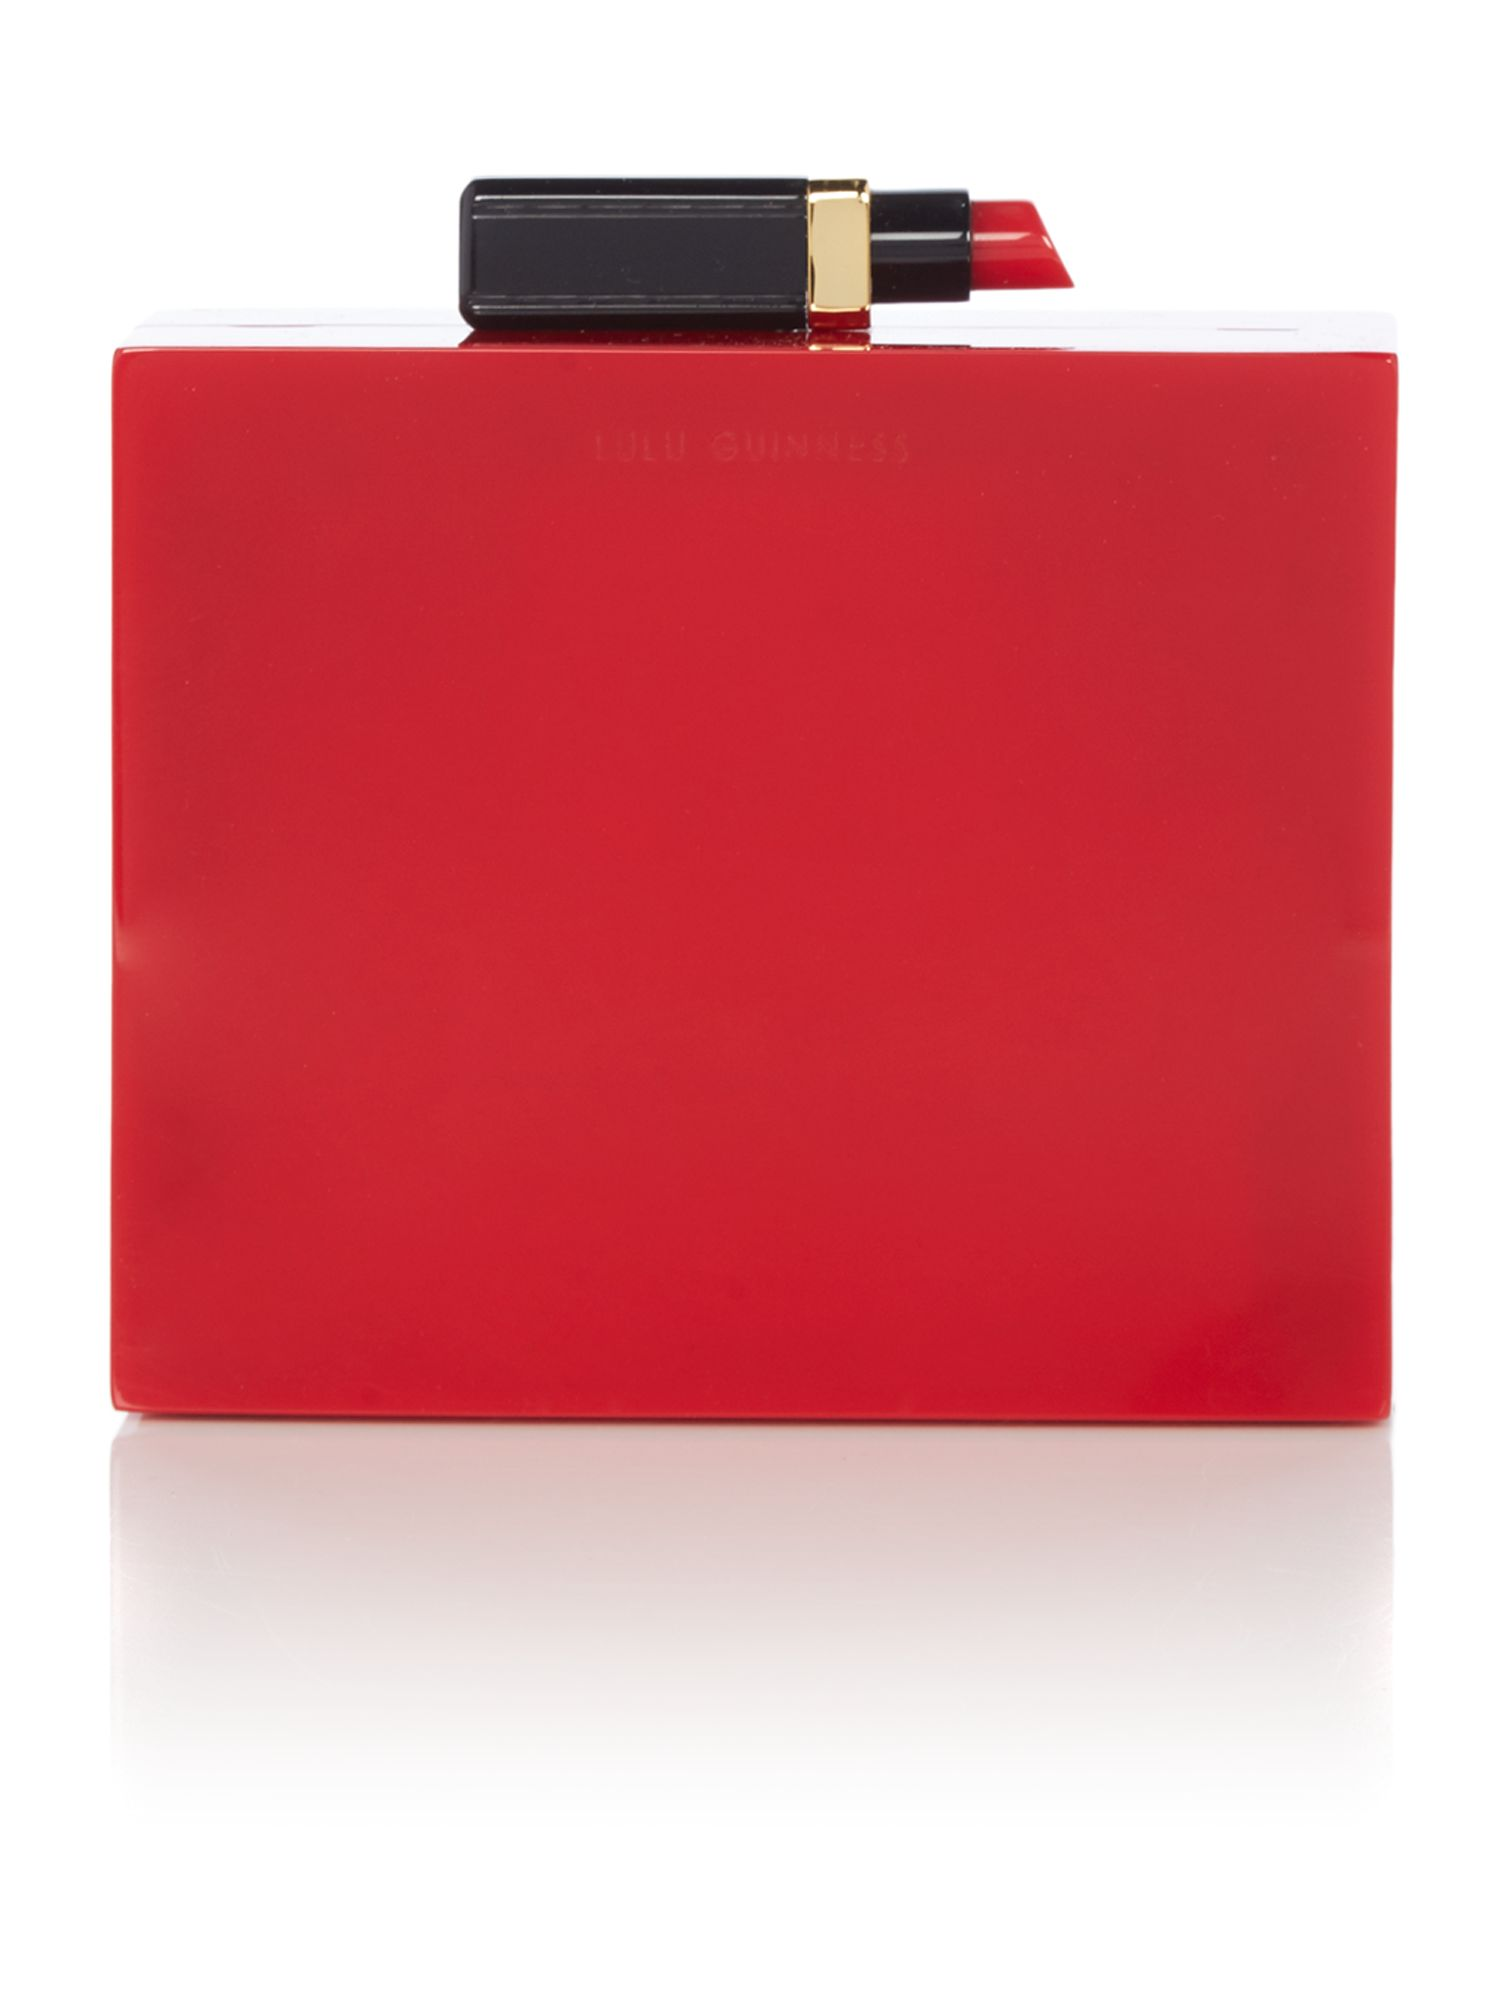 Lulu Guinness Chloe red perspex clutch bag Red